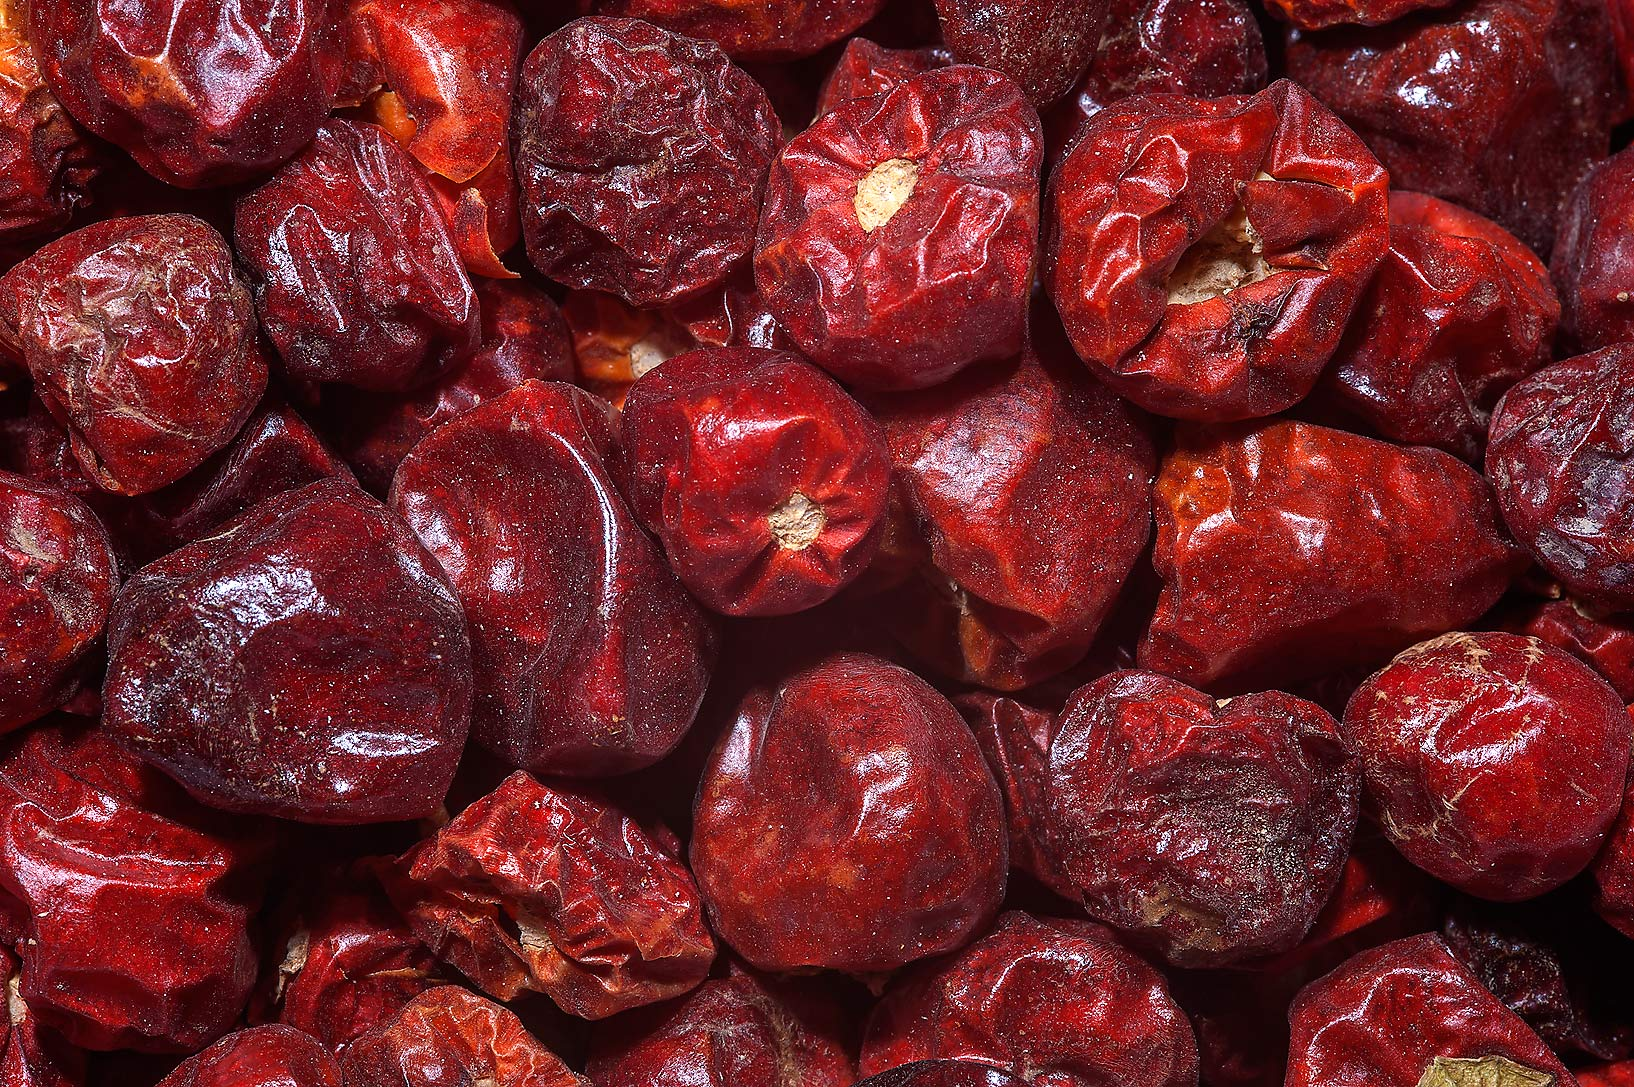 Dry rose hips for sale in spice section of Souq Waqif (Old Market). Doha, Qatar